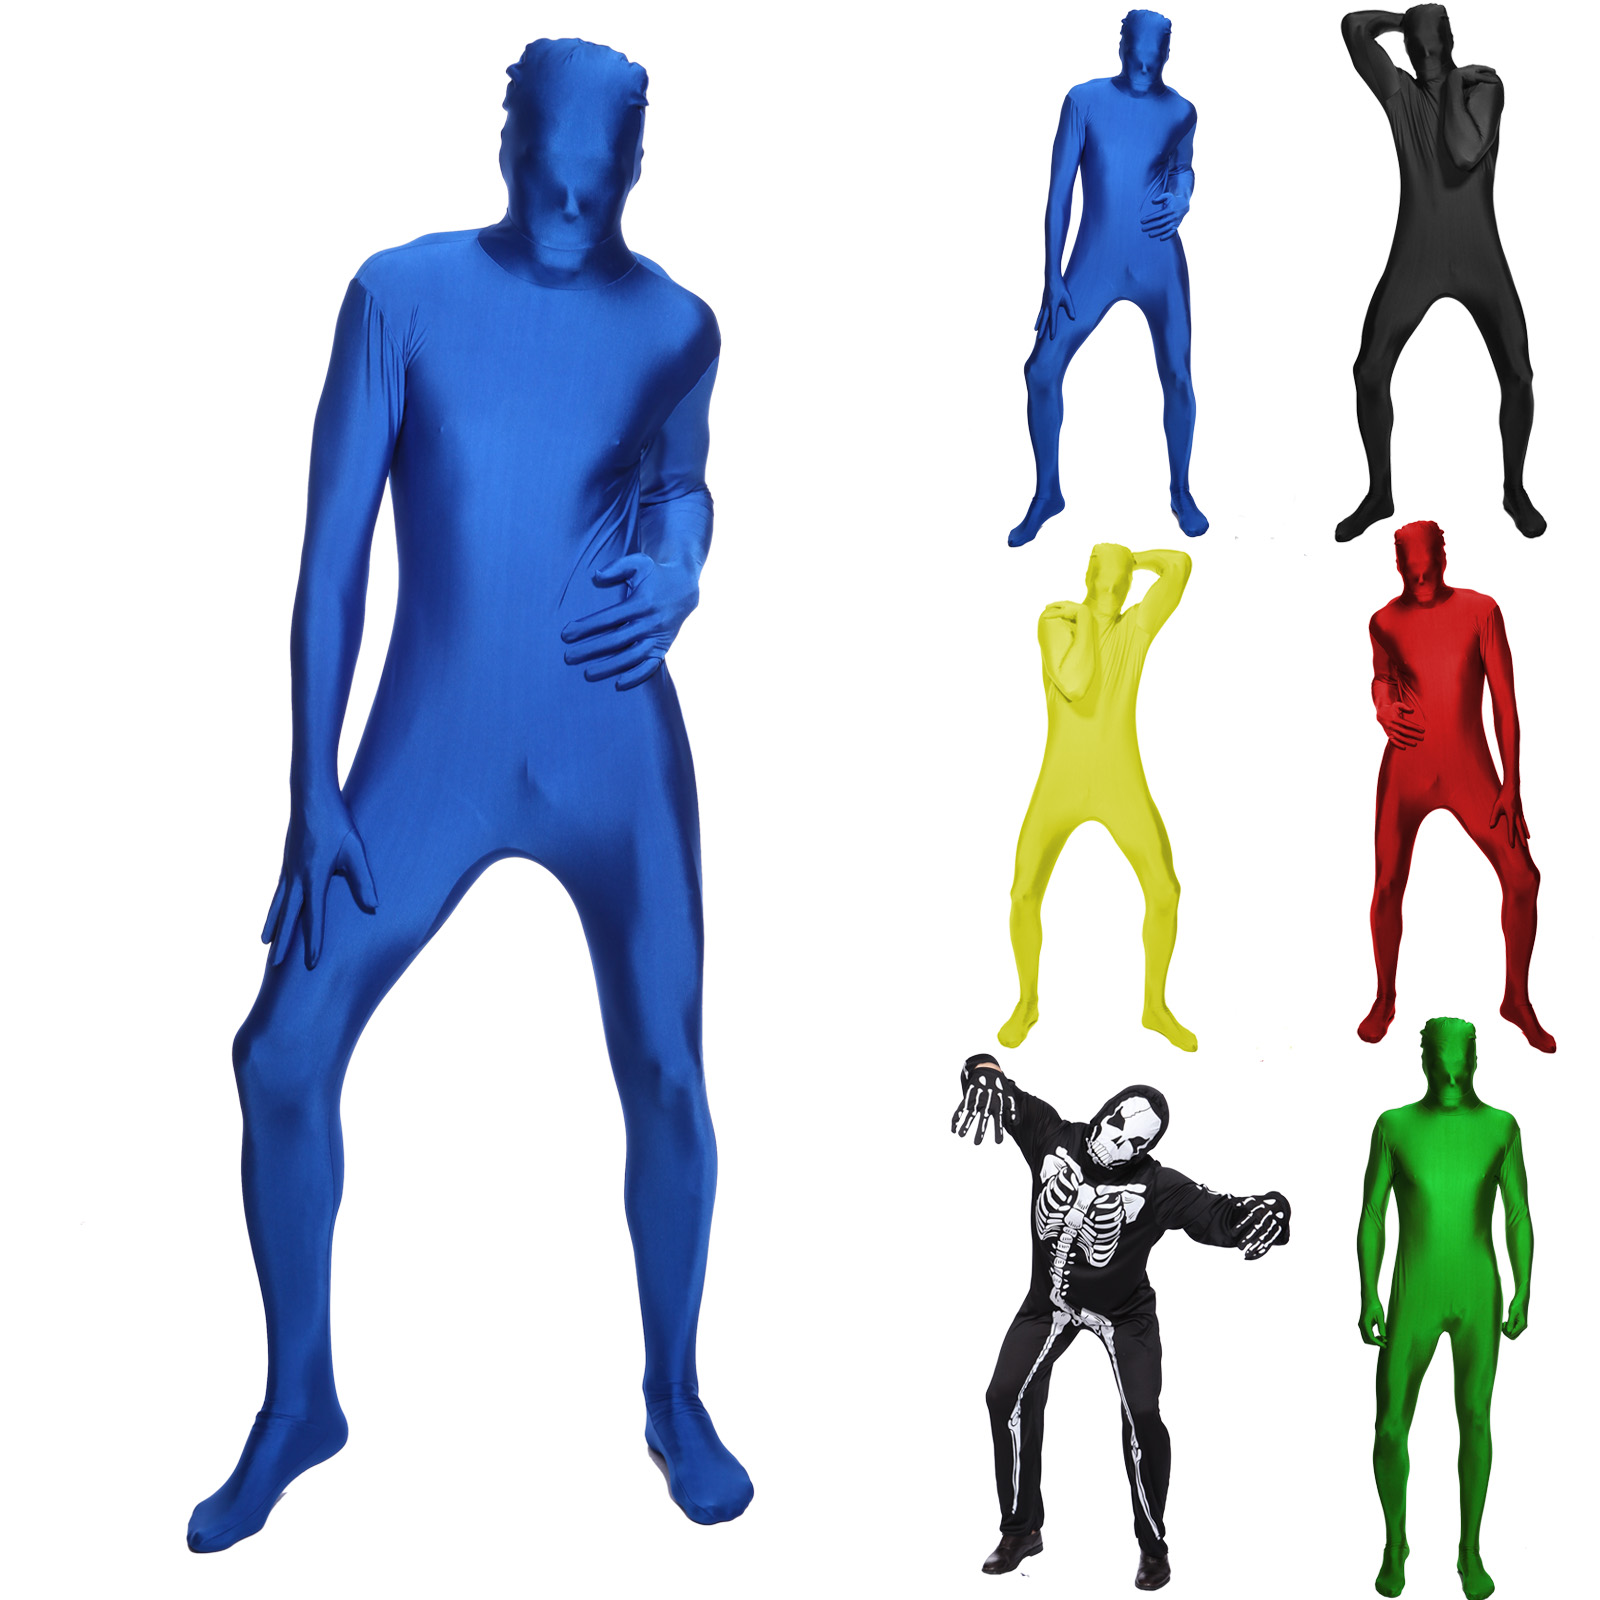 Morph Costume Full body Invisible Bodysuit Second skin Zentai.